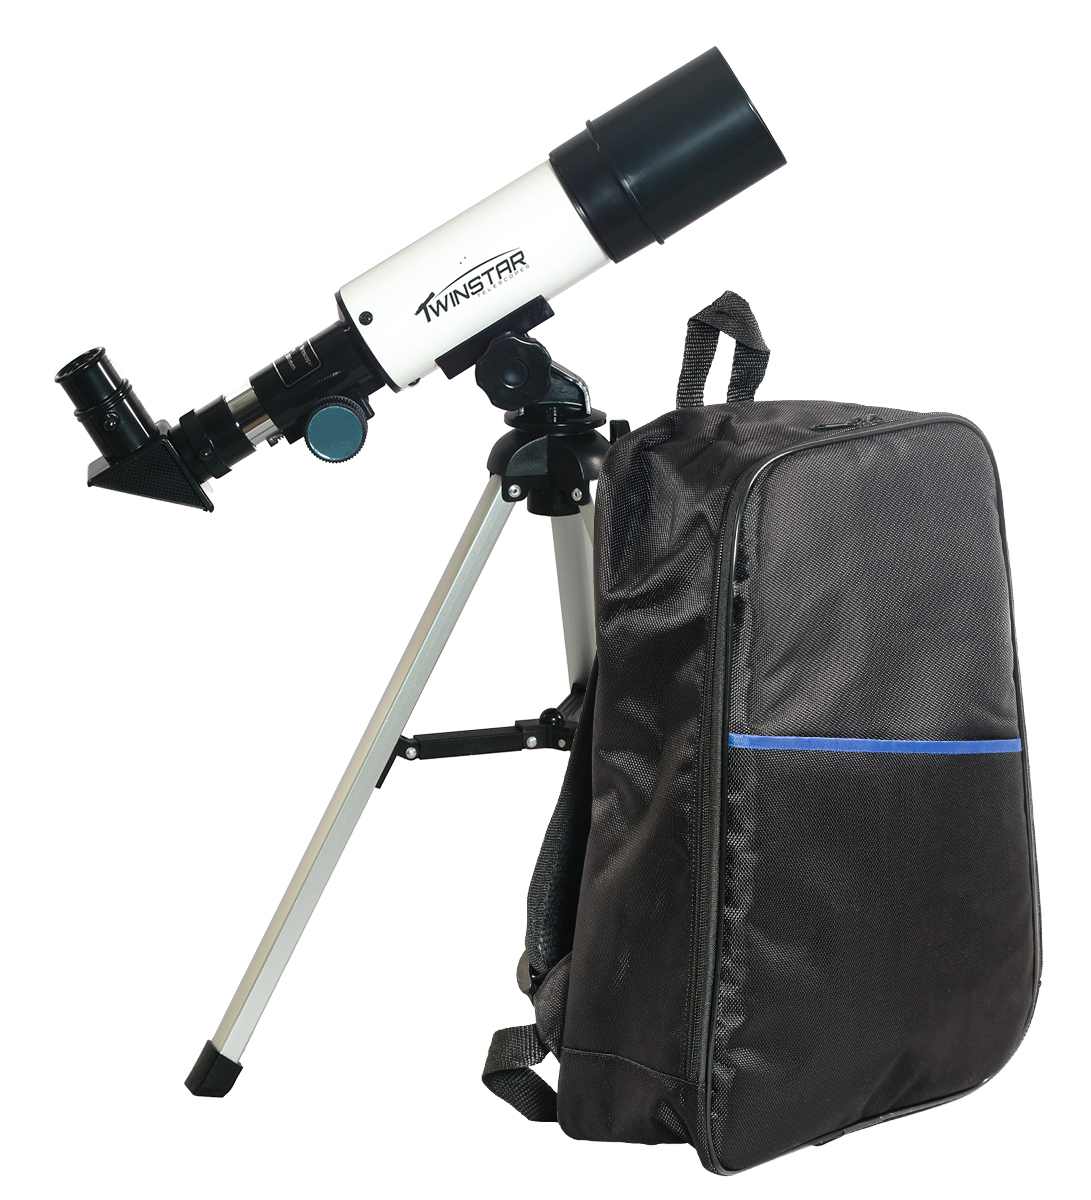 Twinstar 50mm Compact Refractor Telescope Backpack Bundle, White